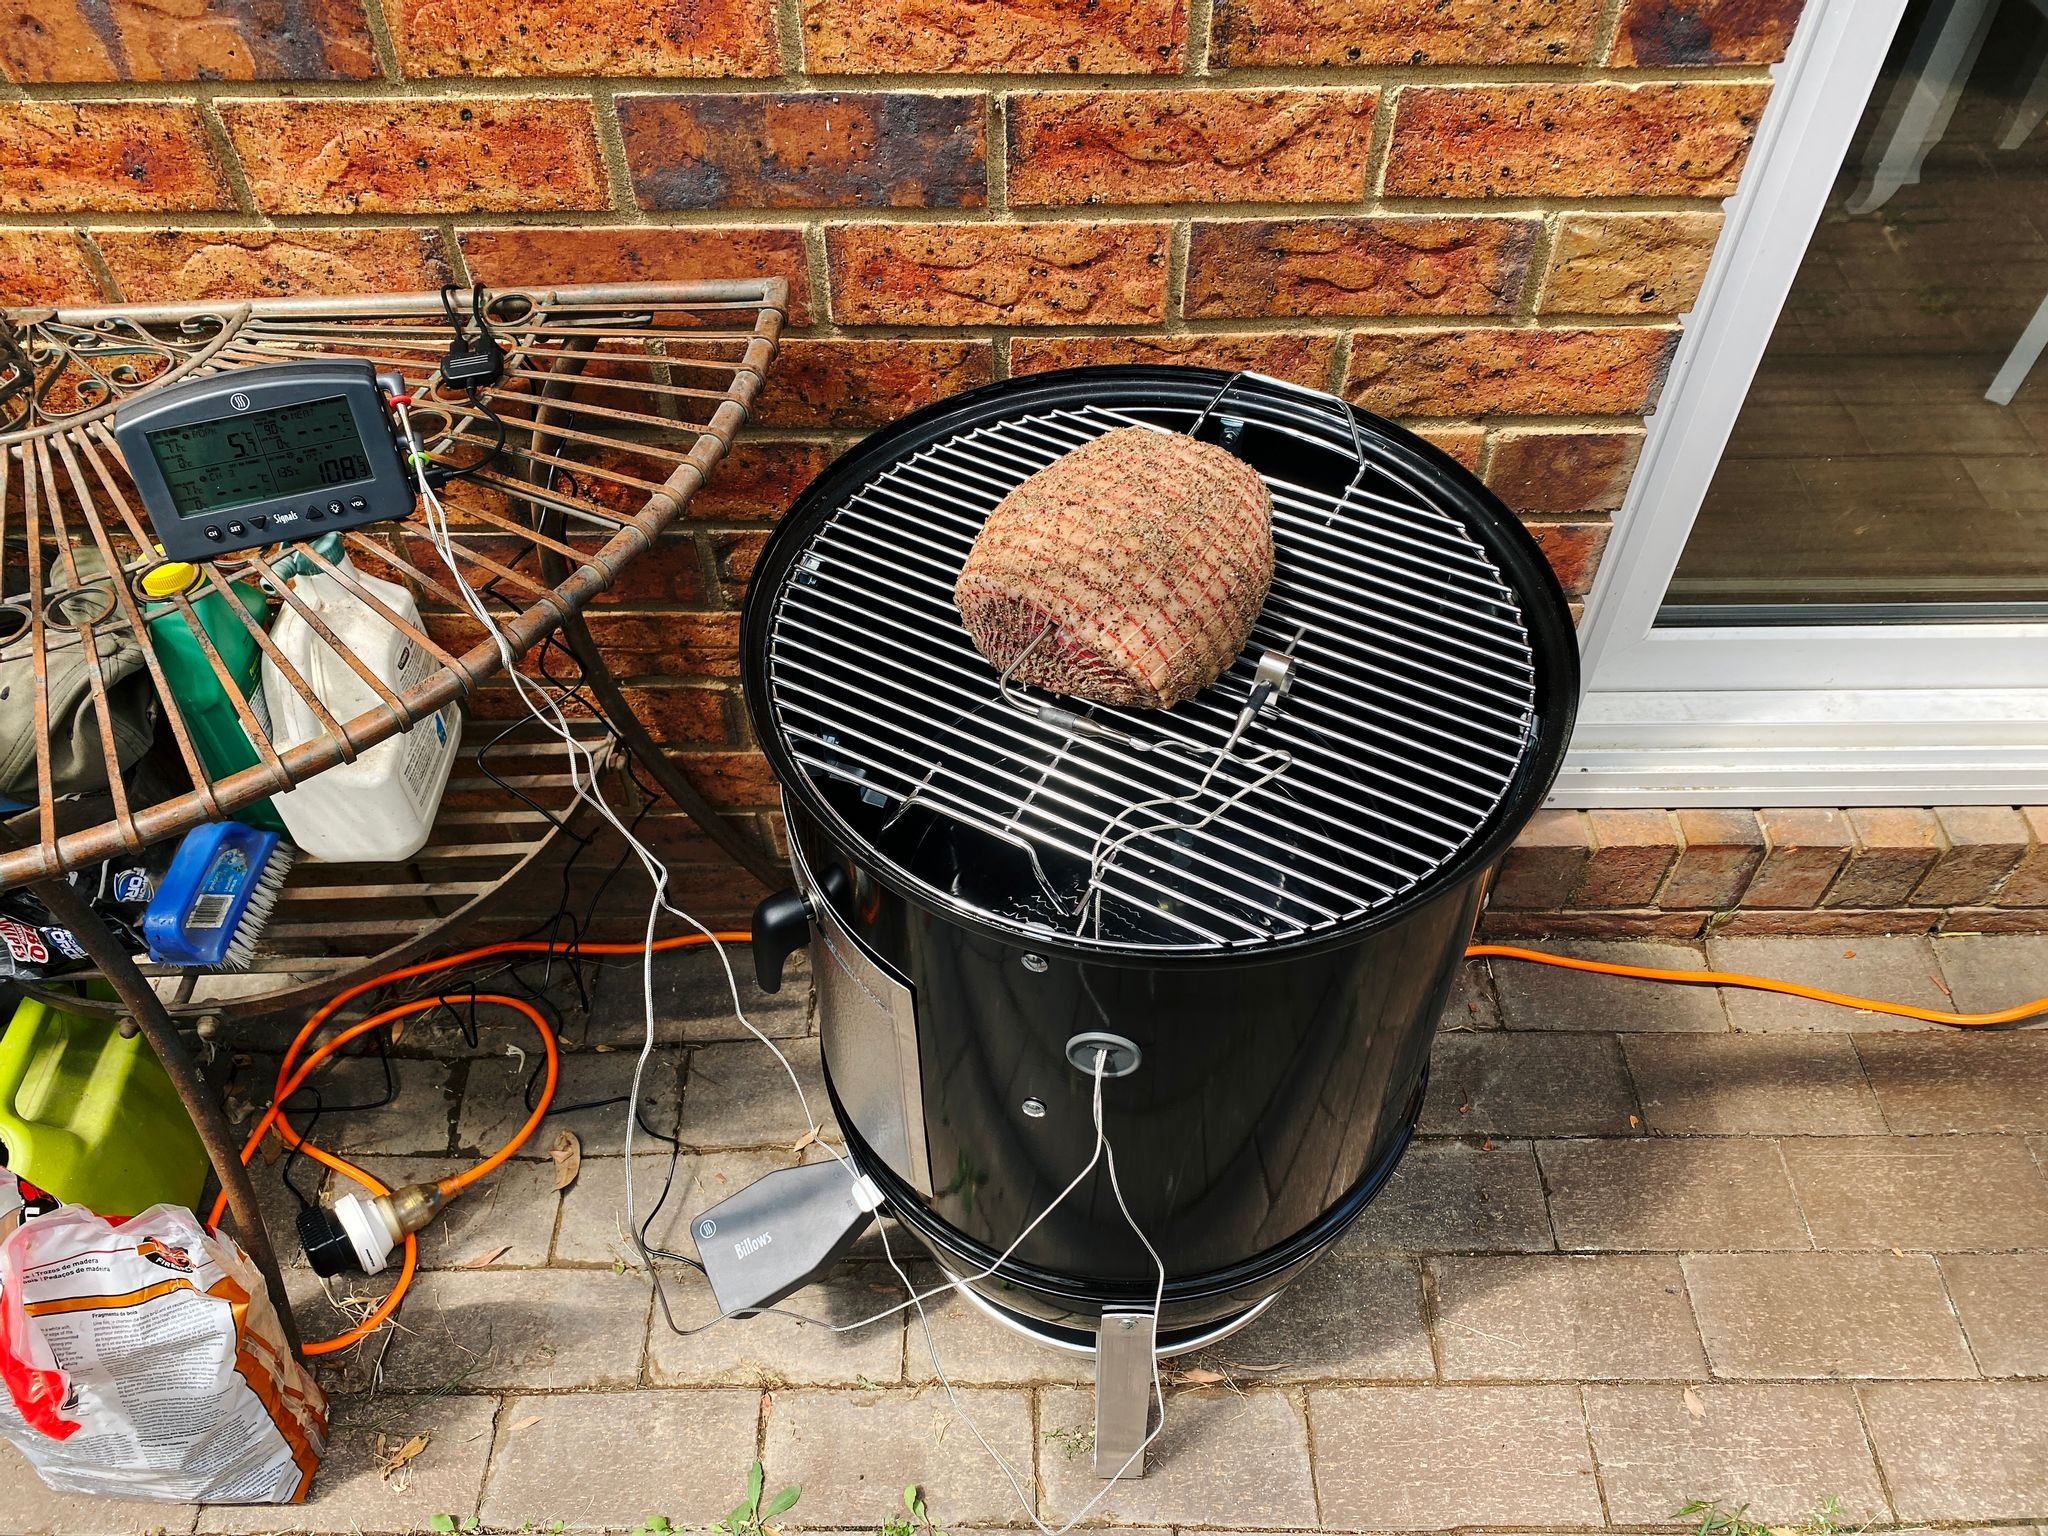 A photo of a pork shoulder sitting on the top grill of a Weber Smokey Mountain smoker.